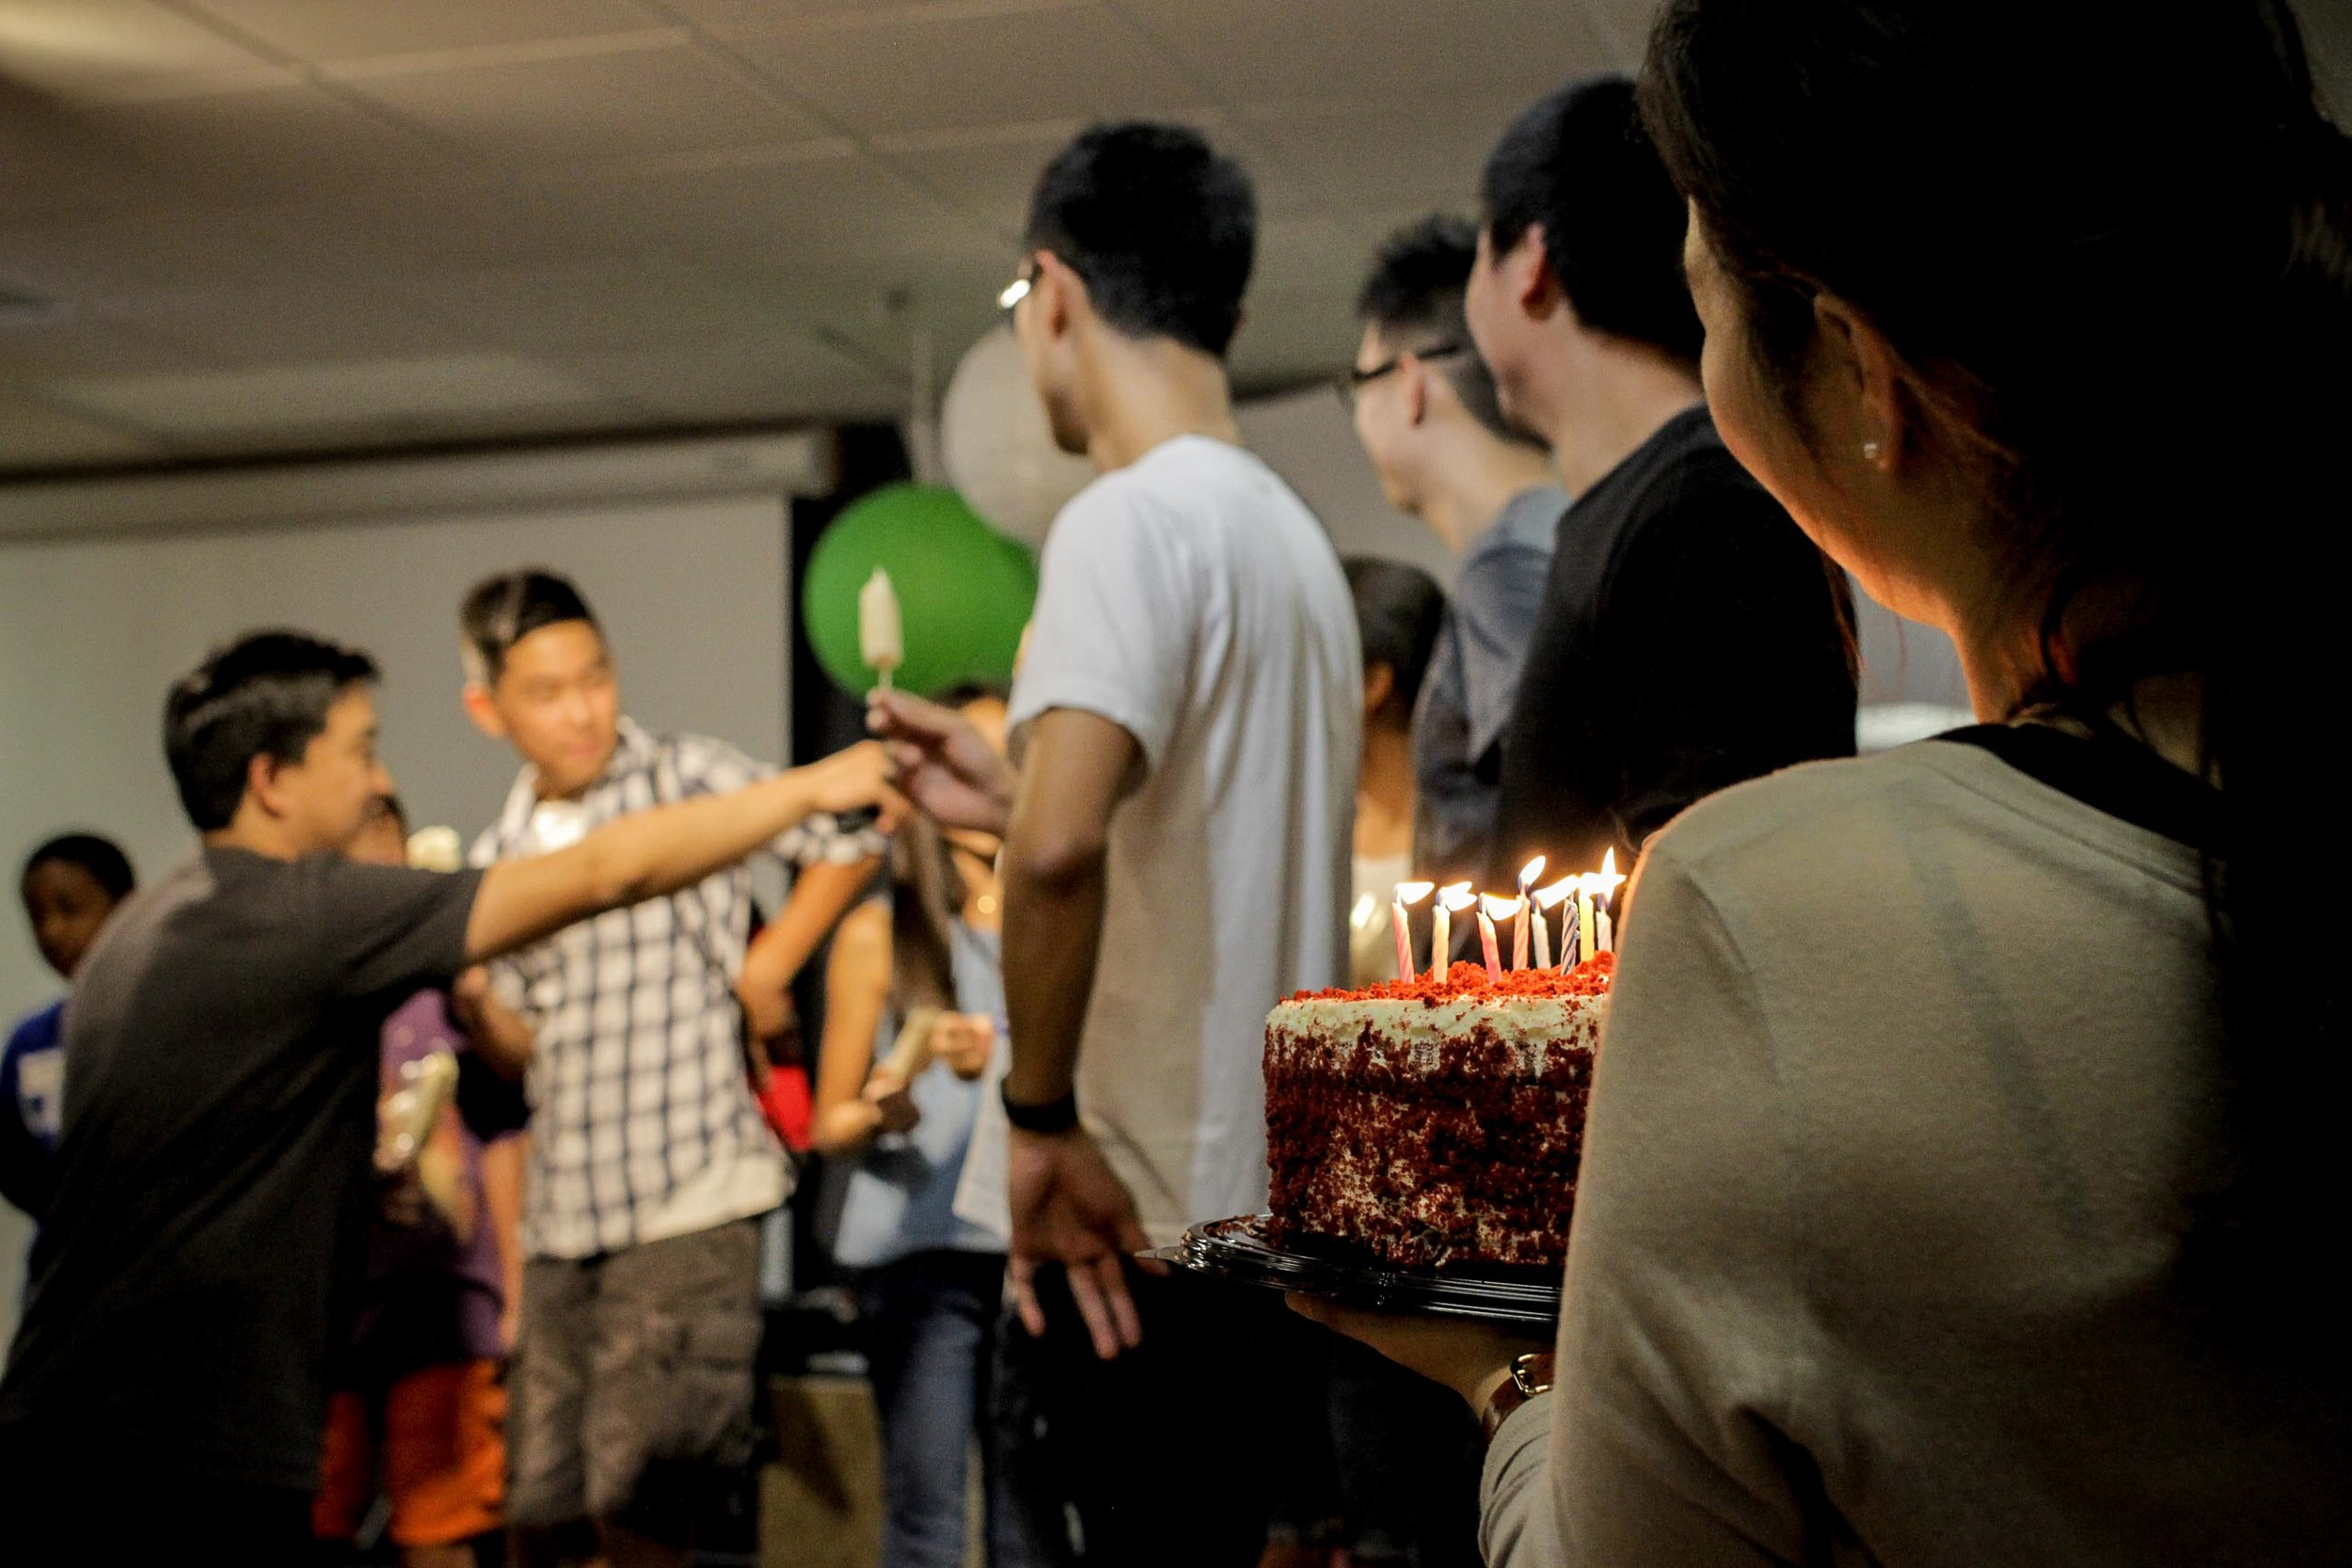 Afterwards, we gathered together to celebrate all of the September birthdays with singing and cake.